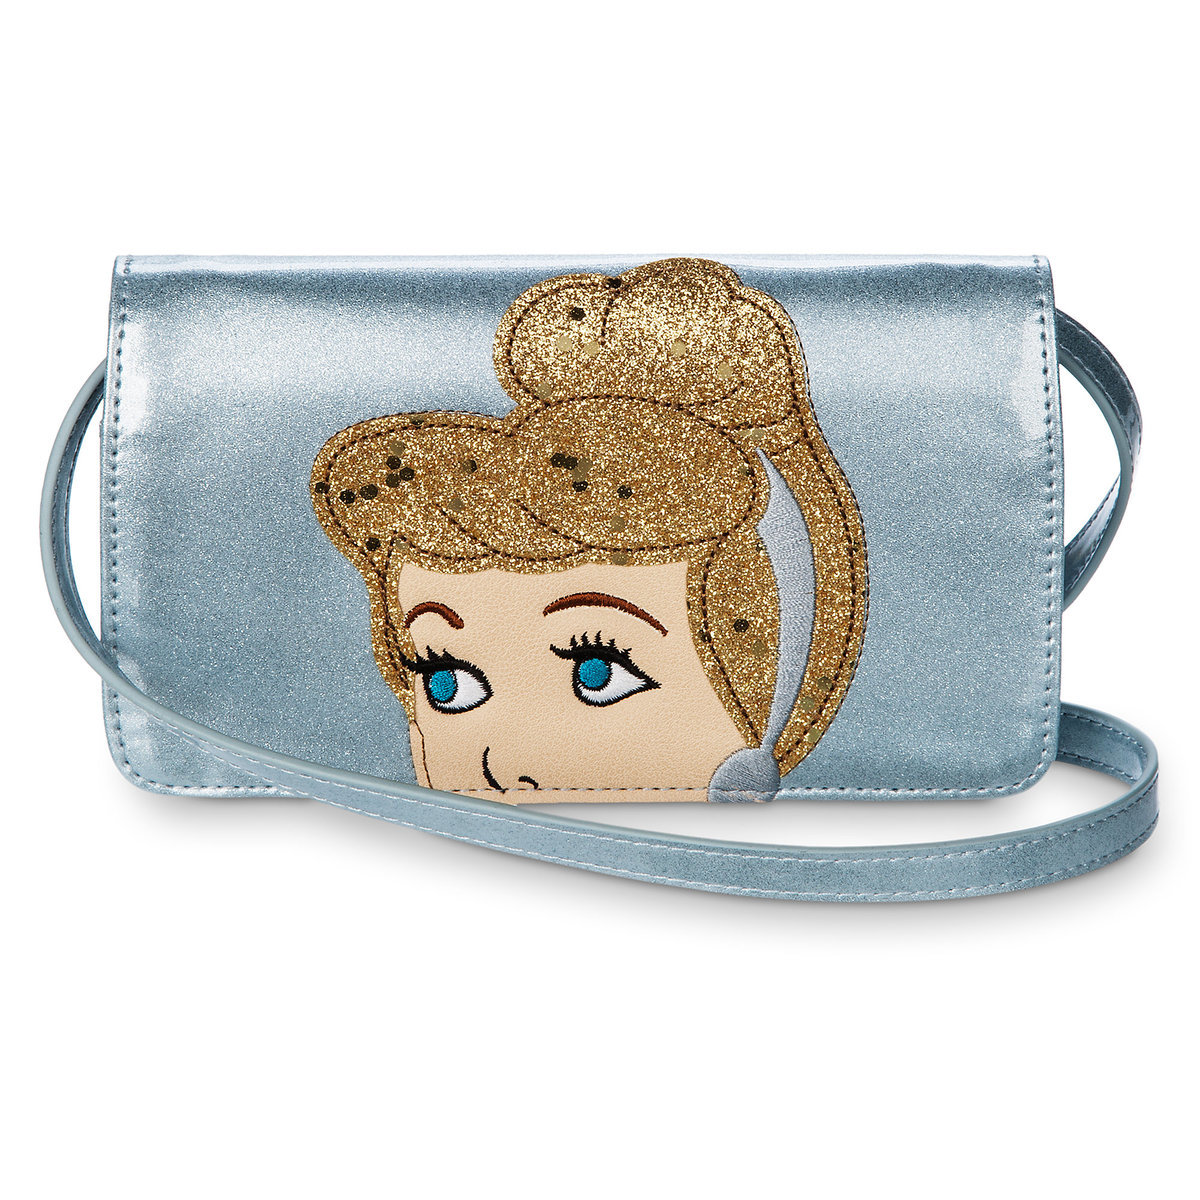 Danielle Nicole Deals on ShopDisney! #DisneyStyle 1